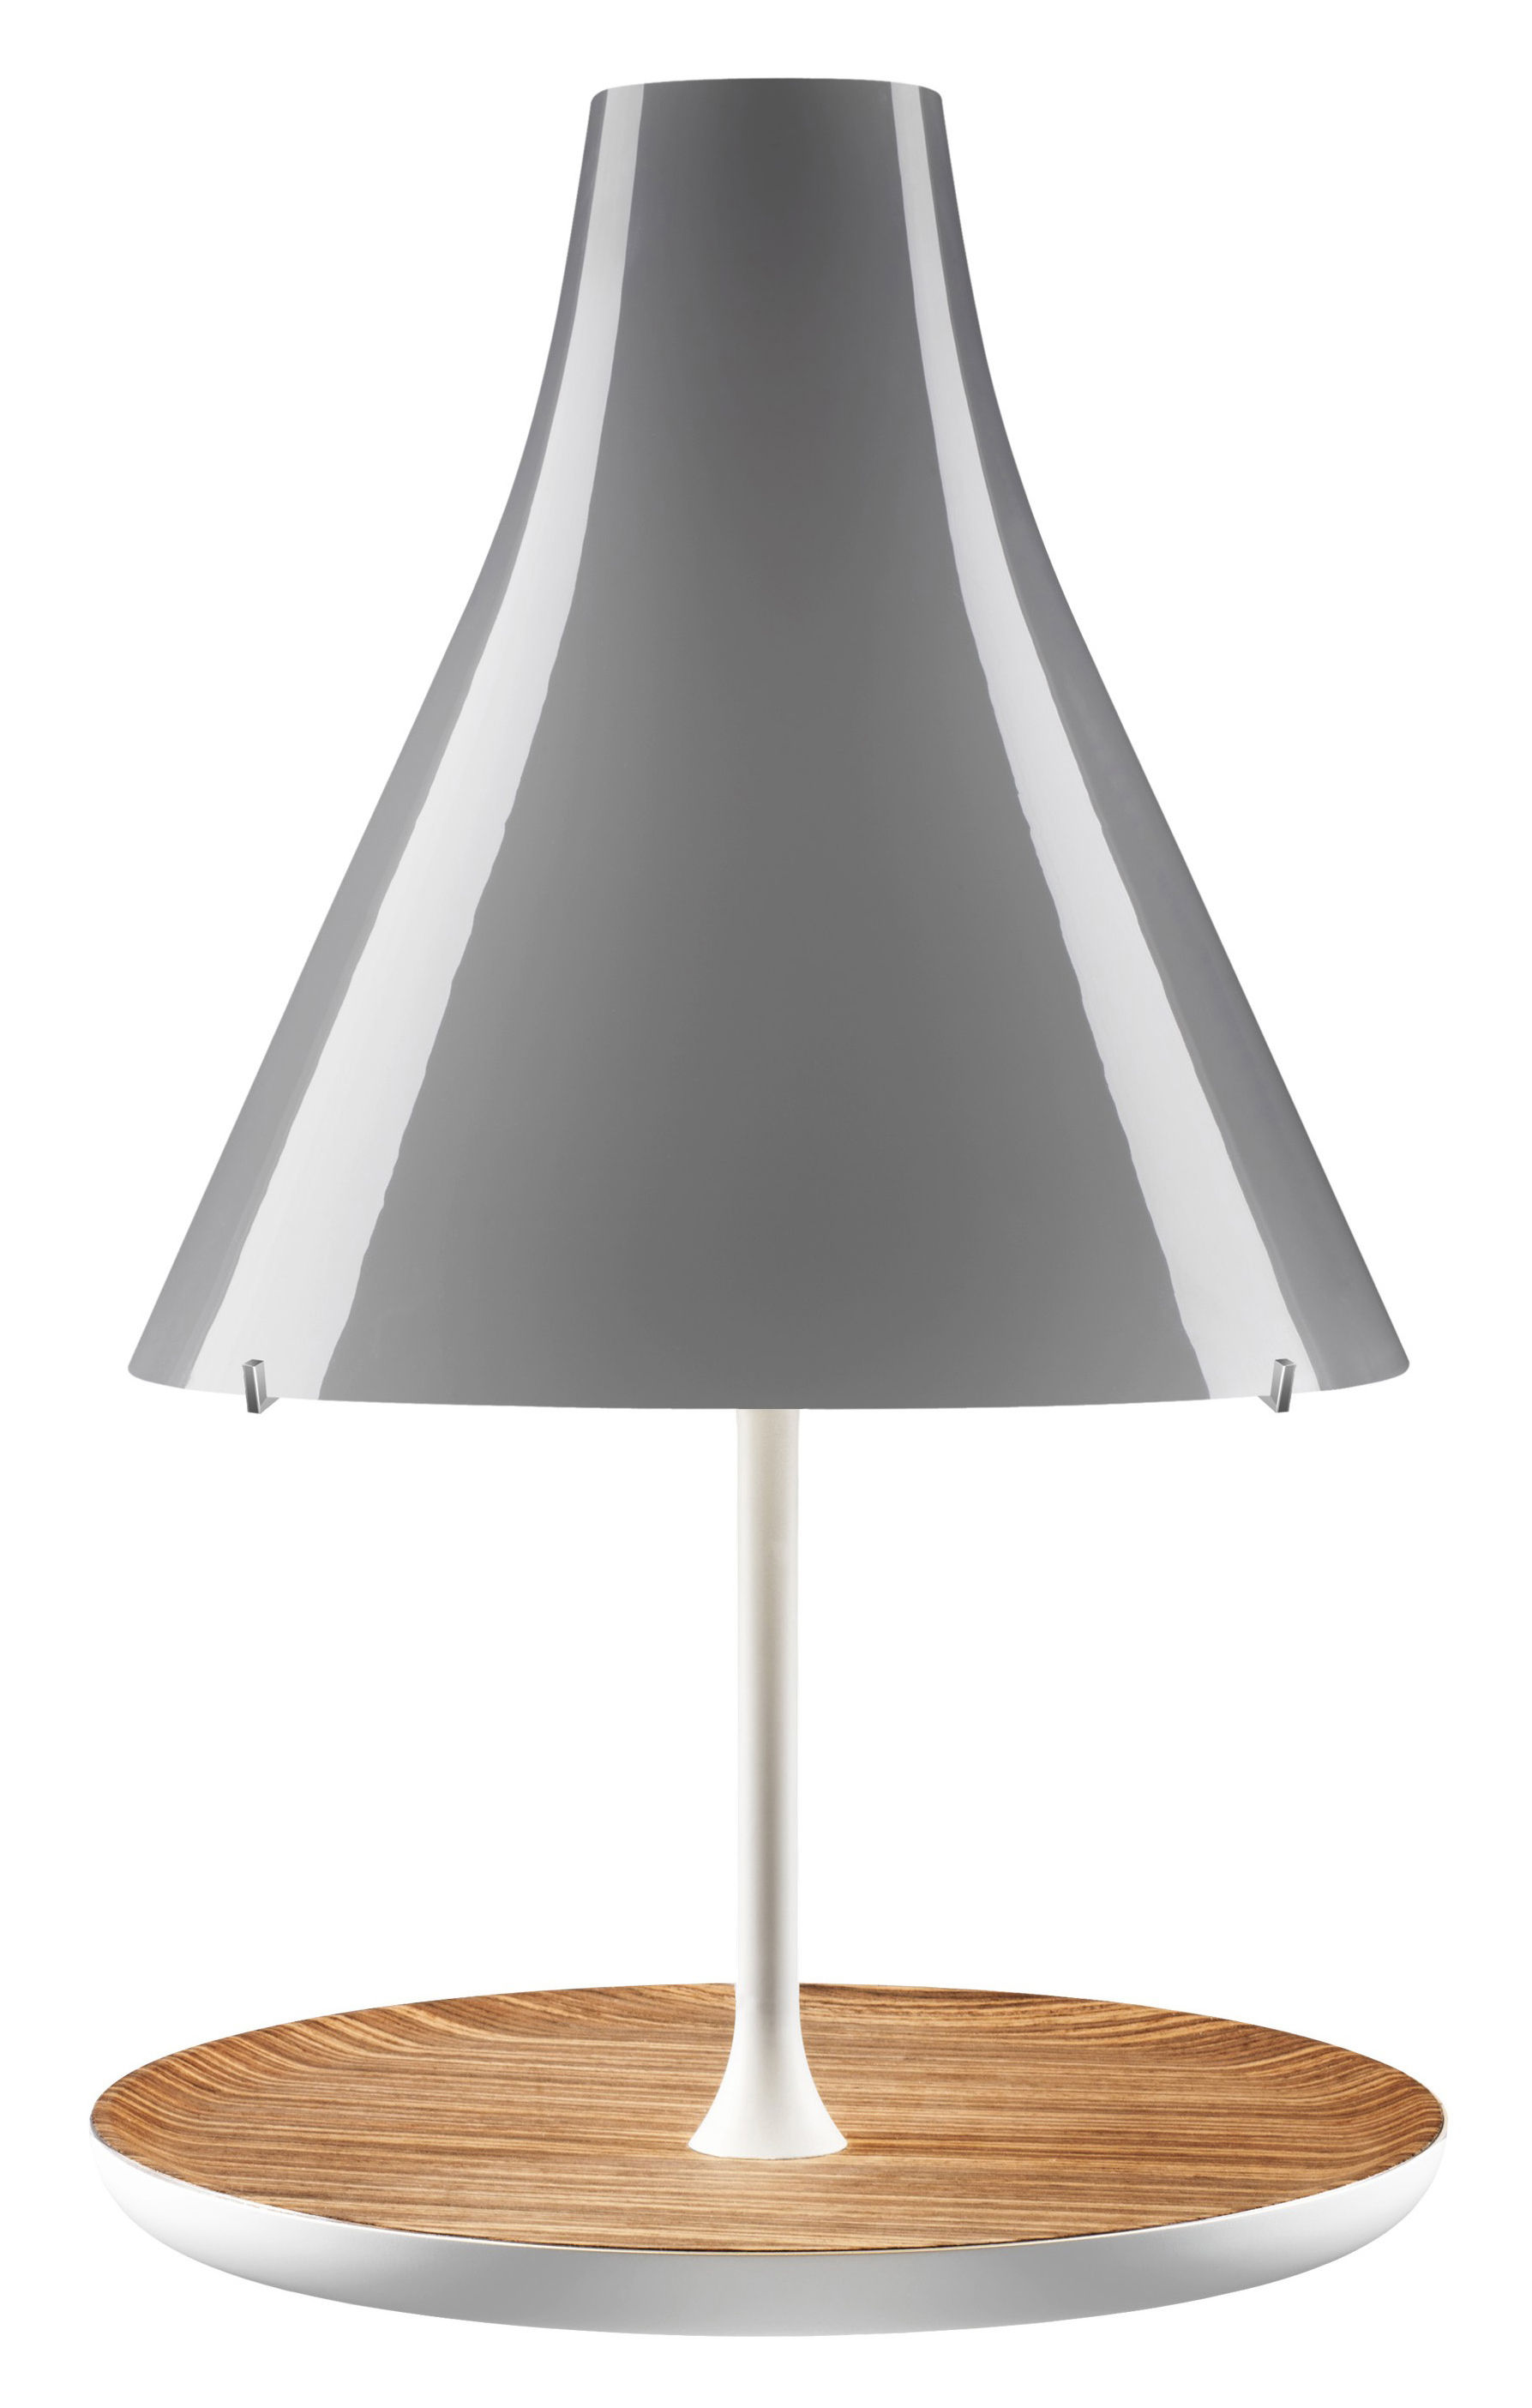 tosca table lamp wooden base grey lampshade wood base by foscarini. Black Bedroom Furniture Sets. Home Design Ideas